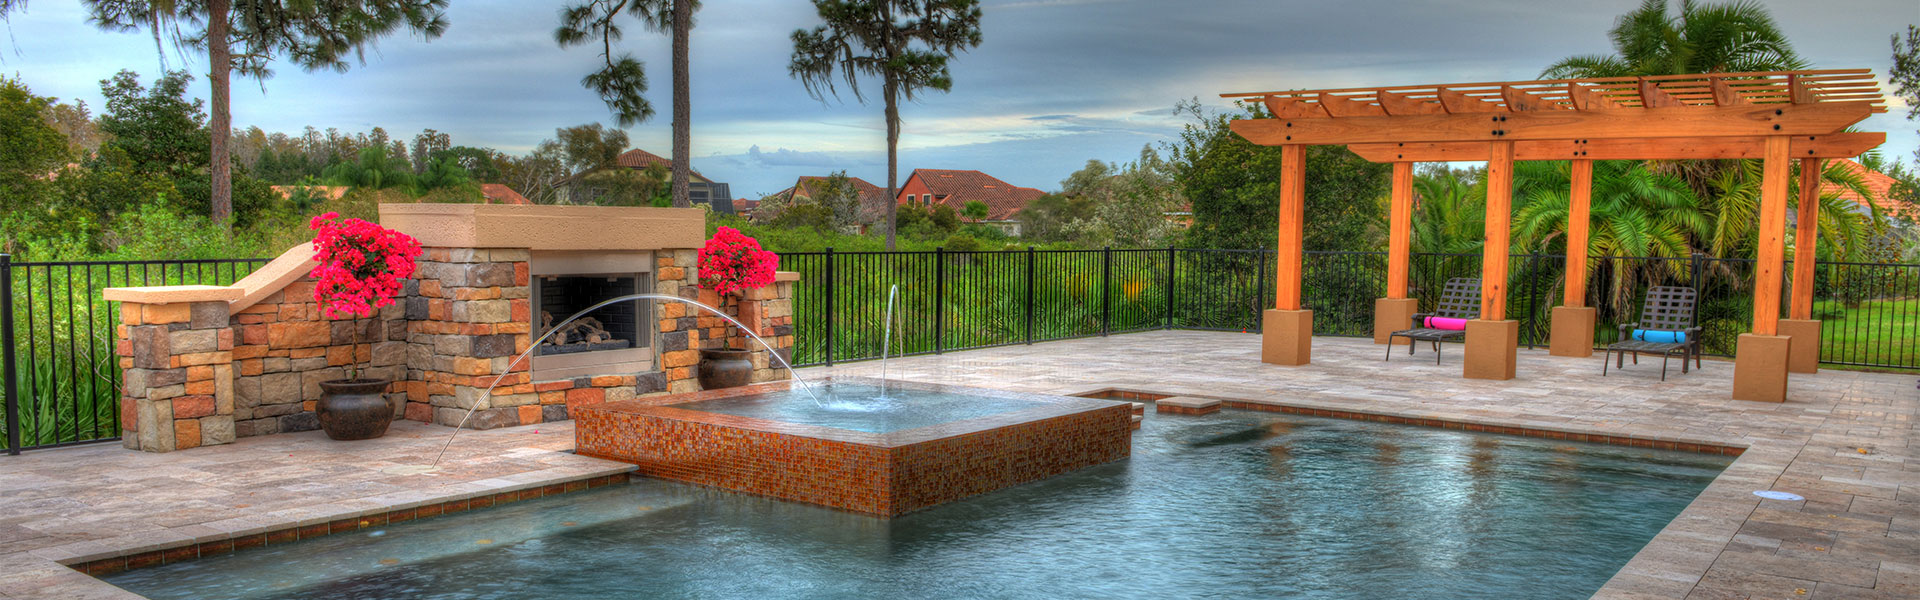 Dreamscapes pools and spas orlando florida for Pool design consultant